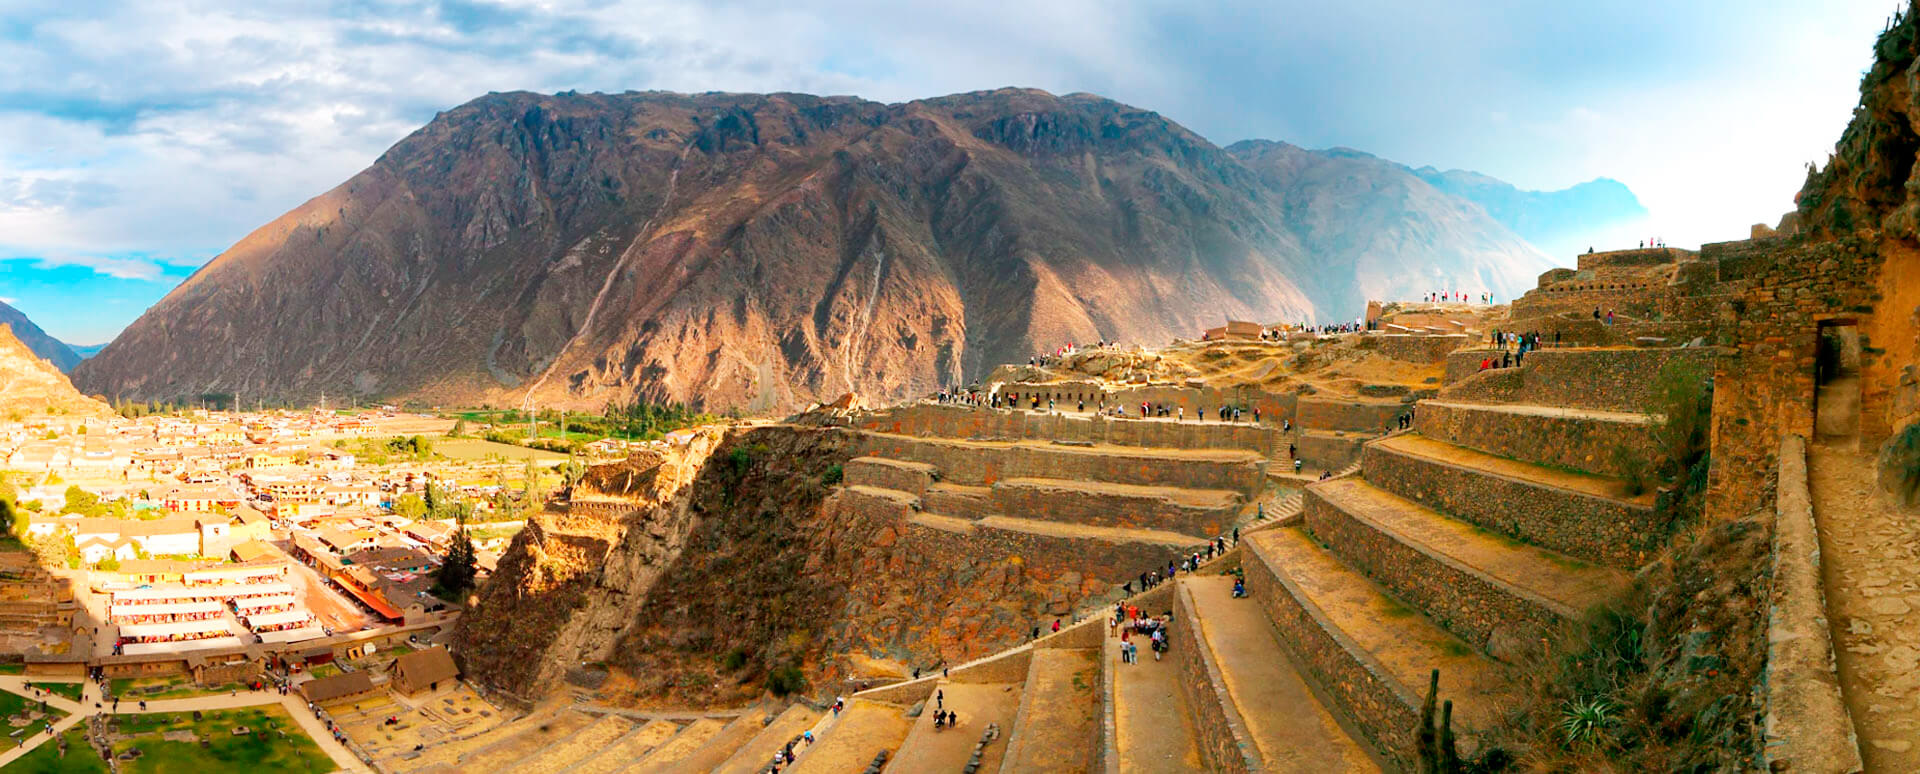 What to see in Ollantaytambo?